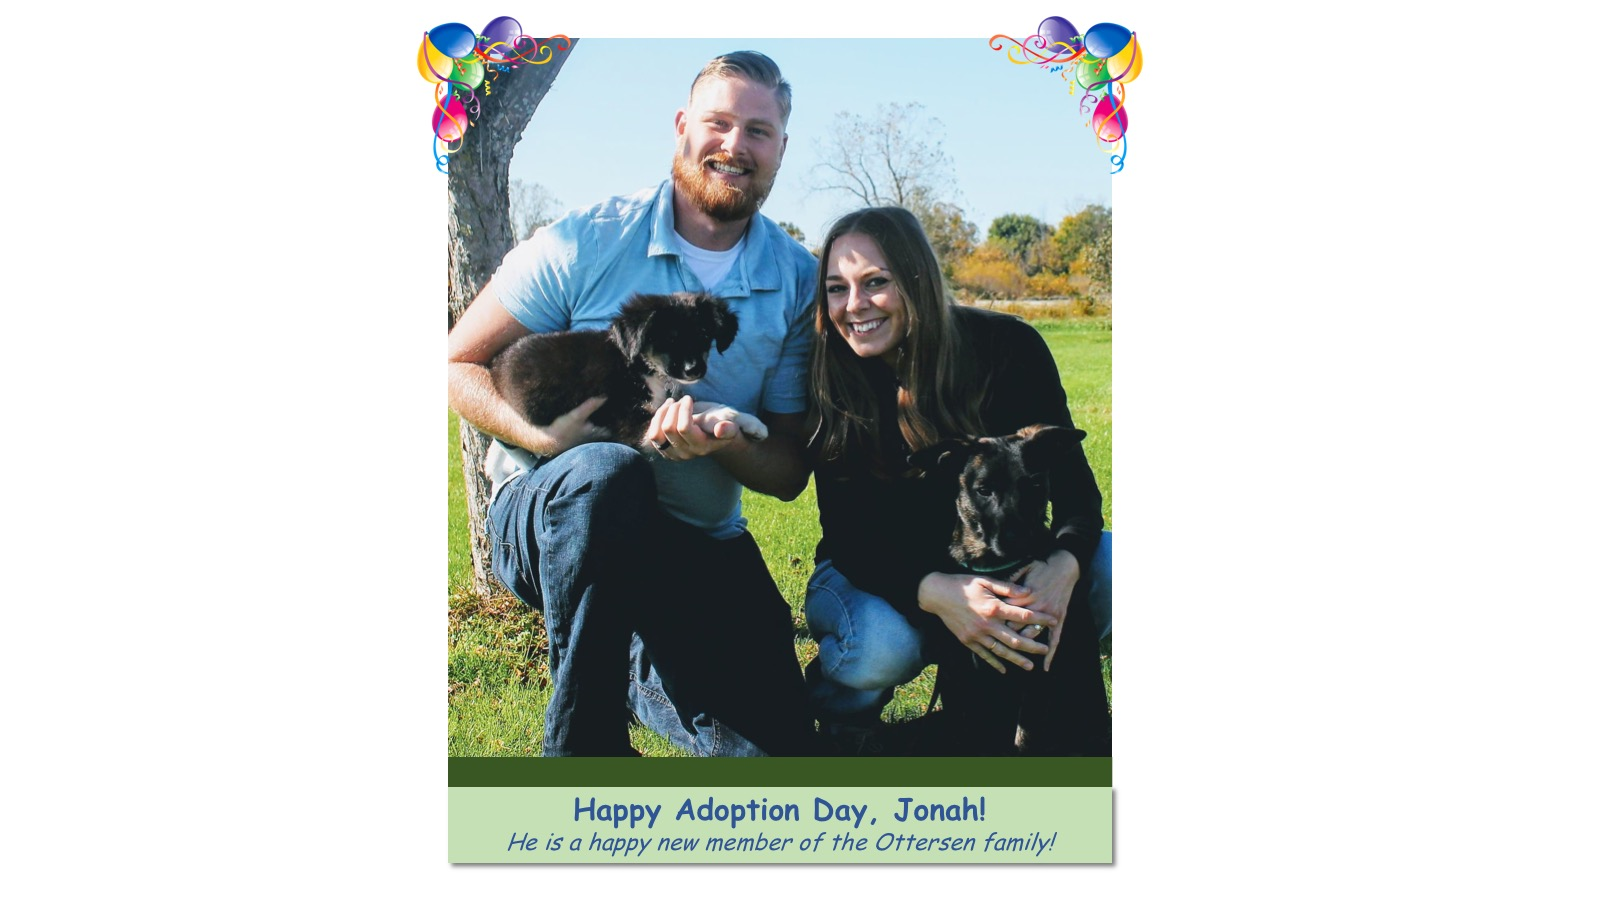 Jonah_Adoption_Photo_2018.jpg